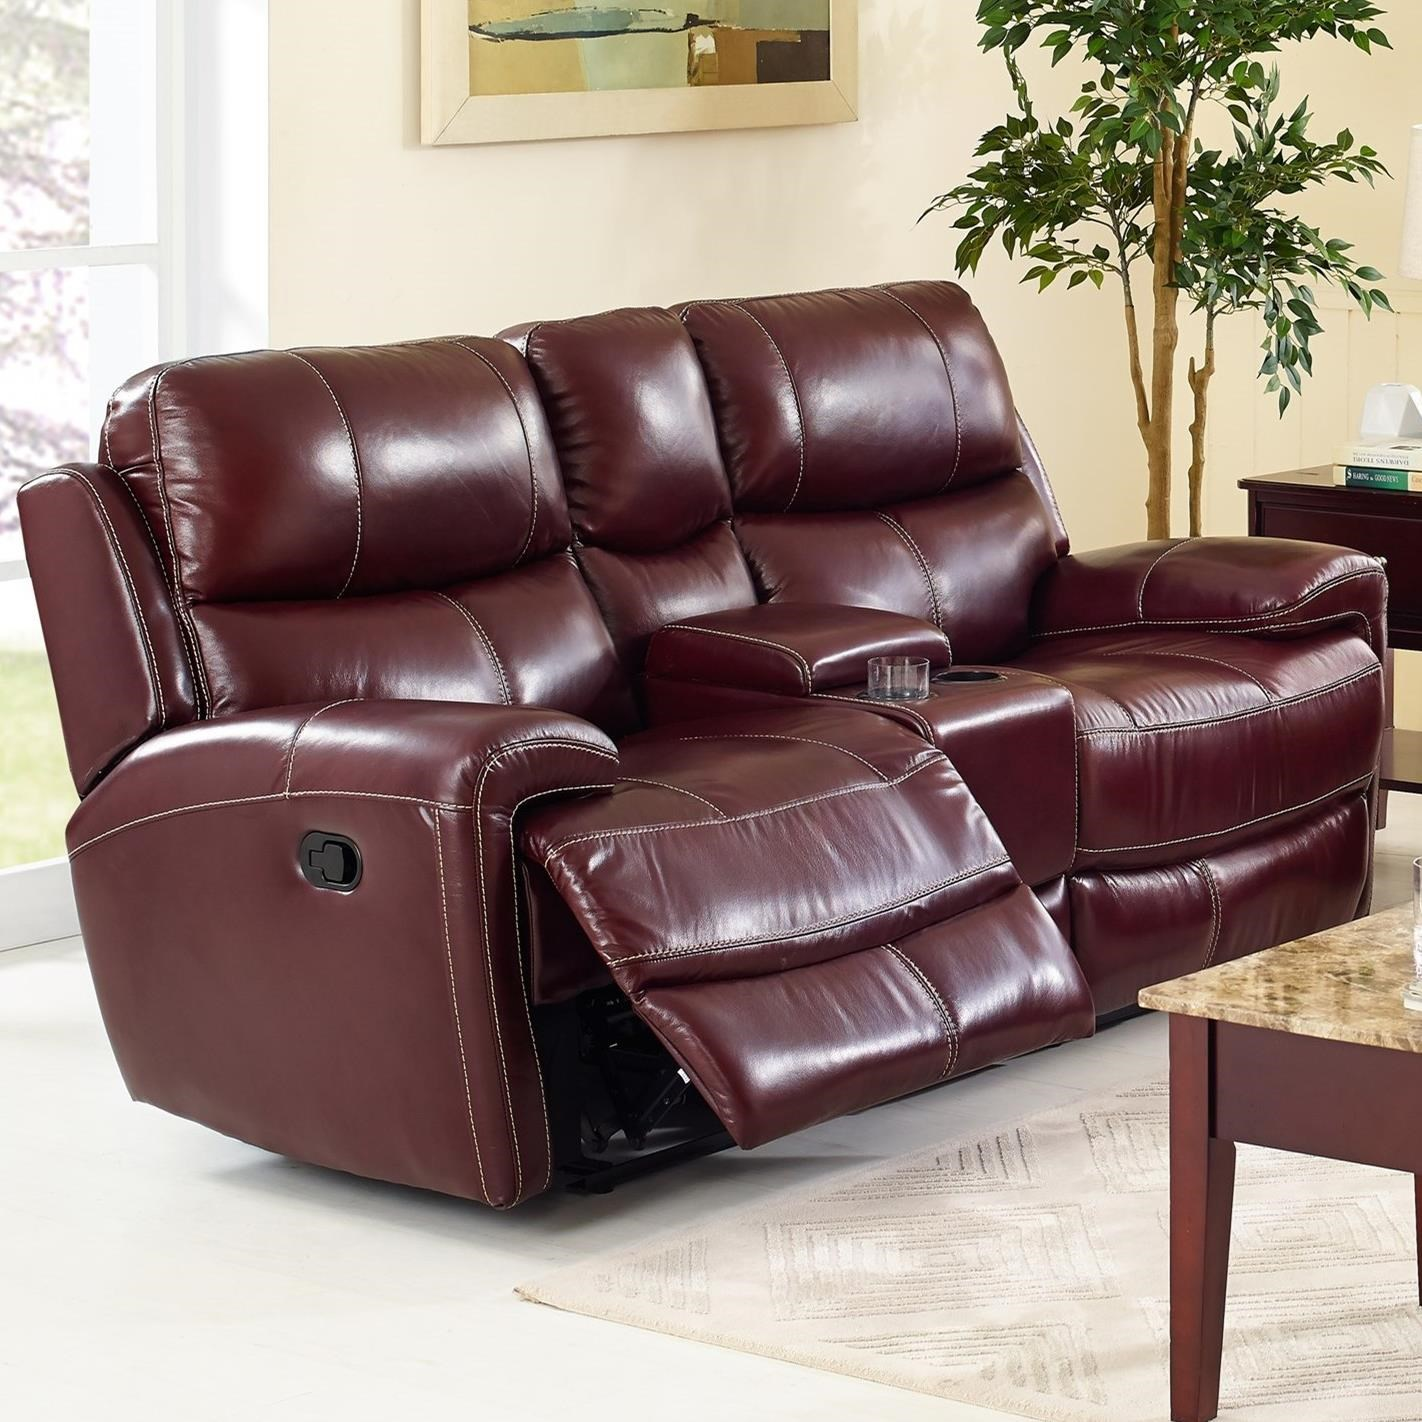 New Classic Boulevard L2233 25p Brg Power Reclining Console Loveseat